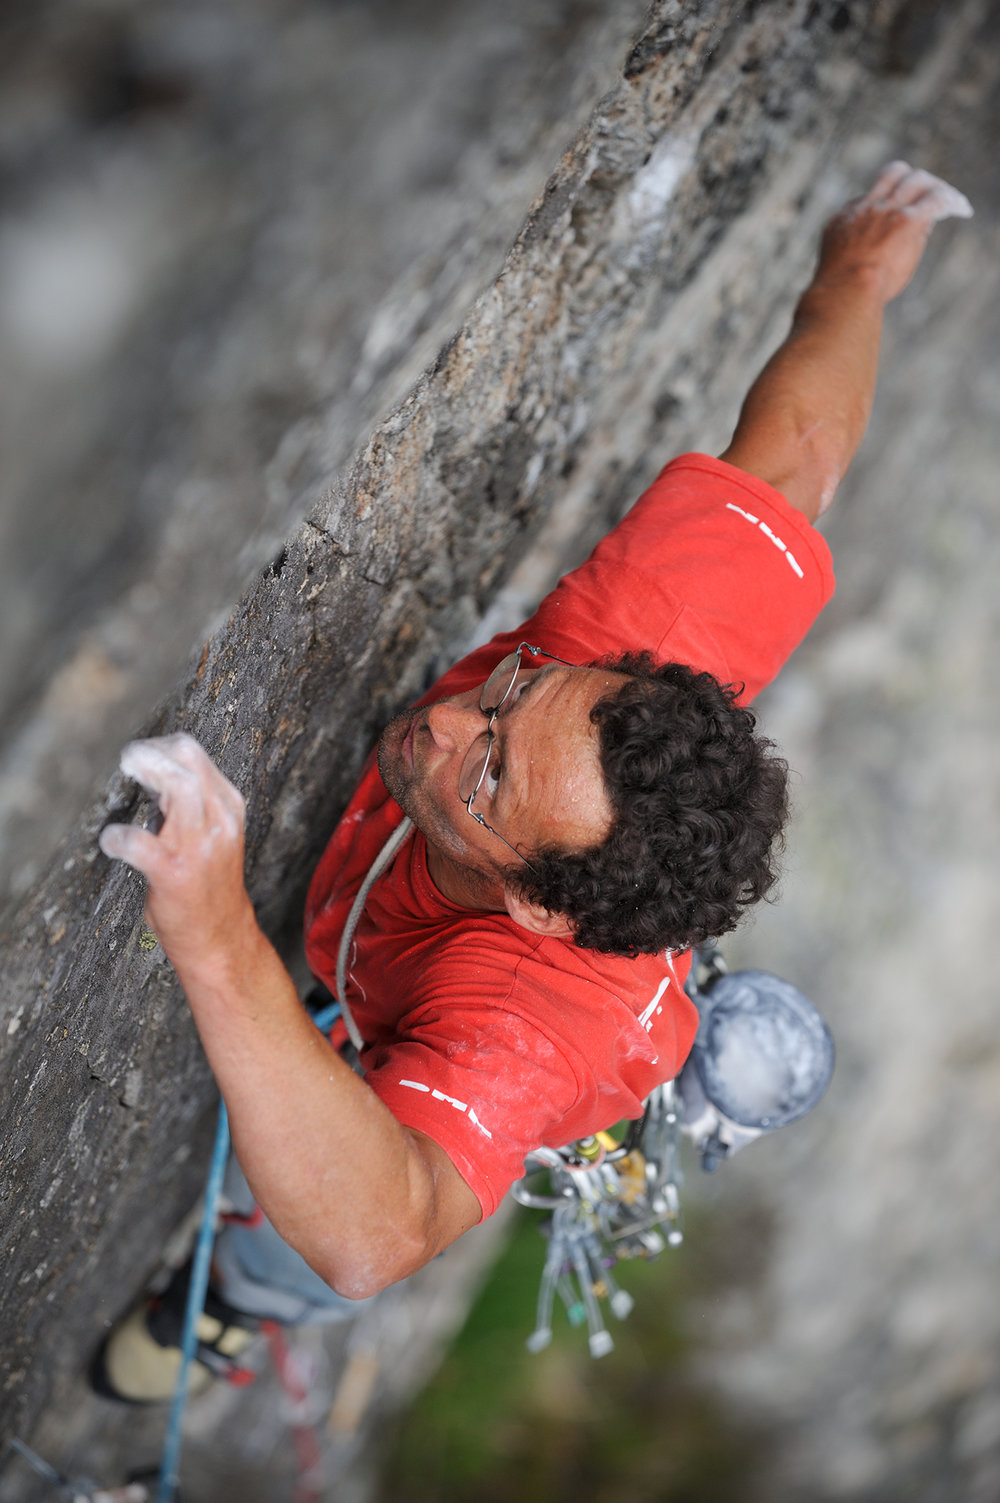 Nick Bullock on first ascent of Shockwave E6 6a, Gallt yr Ogof, Ogwen